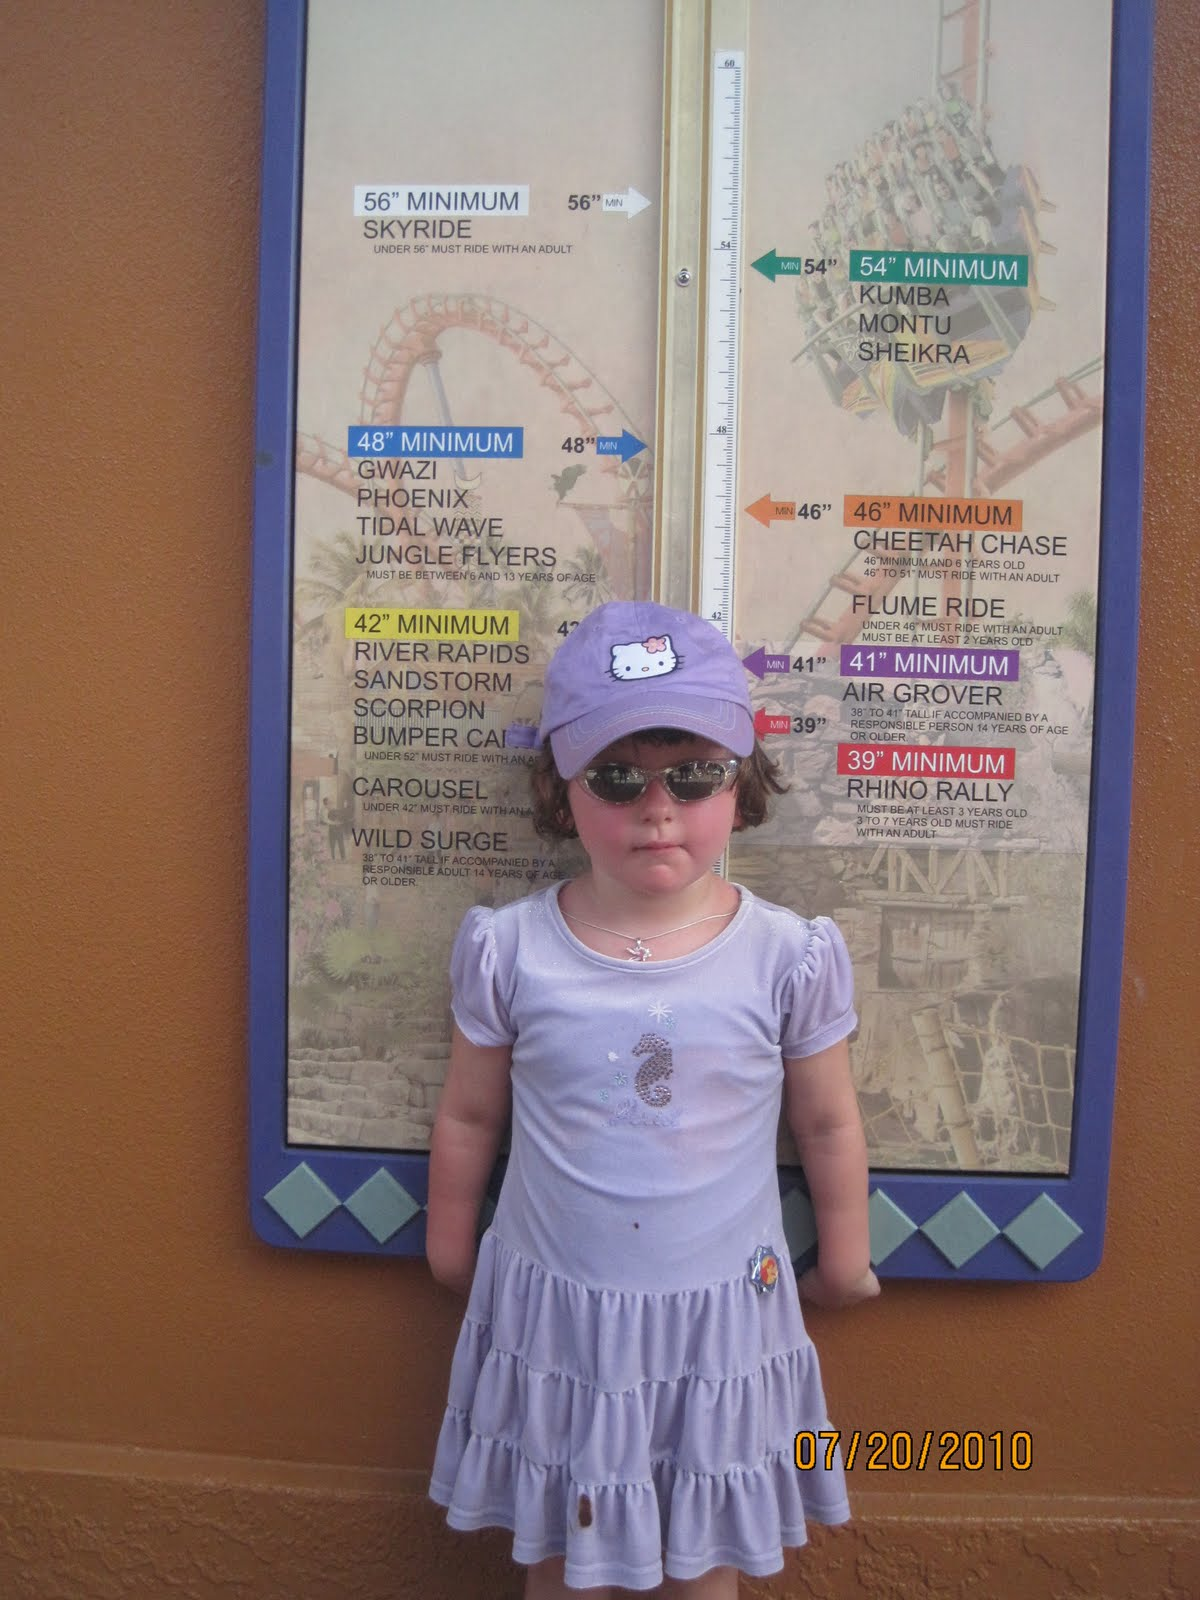 Jamie us now and forever july 2010 for Busch gardens height restrictions